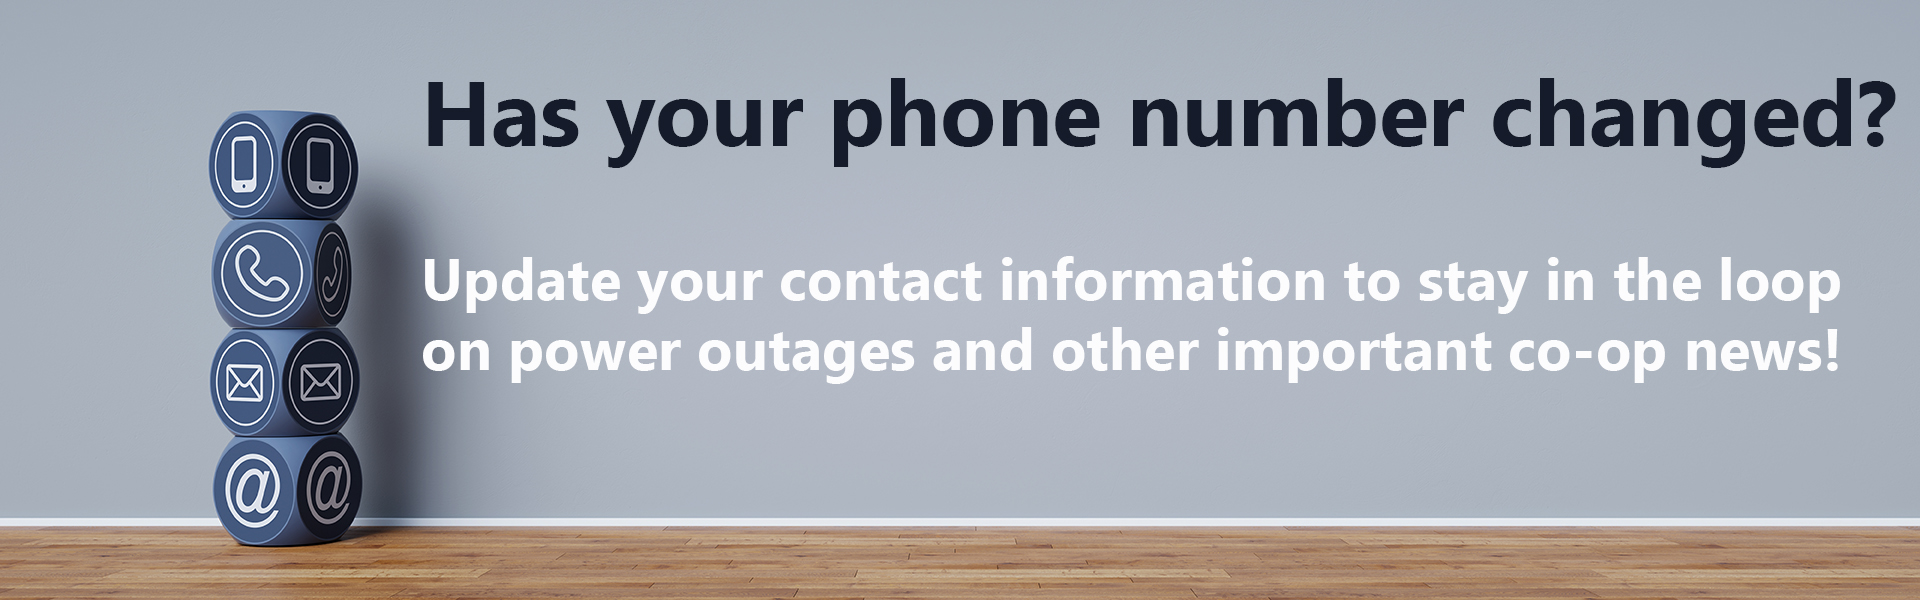 "Graphic that says ""Has your phone number changed? Update your contact information to stay in the loop on power outages and other co-op news!"""